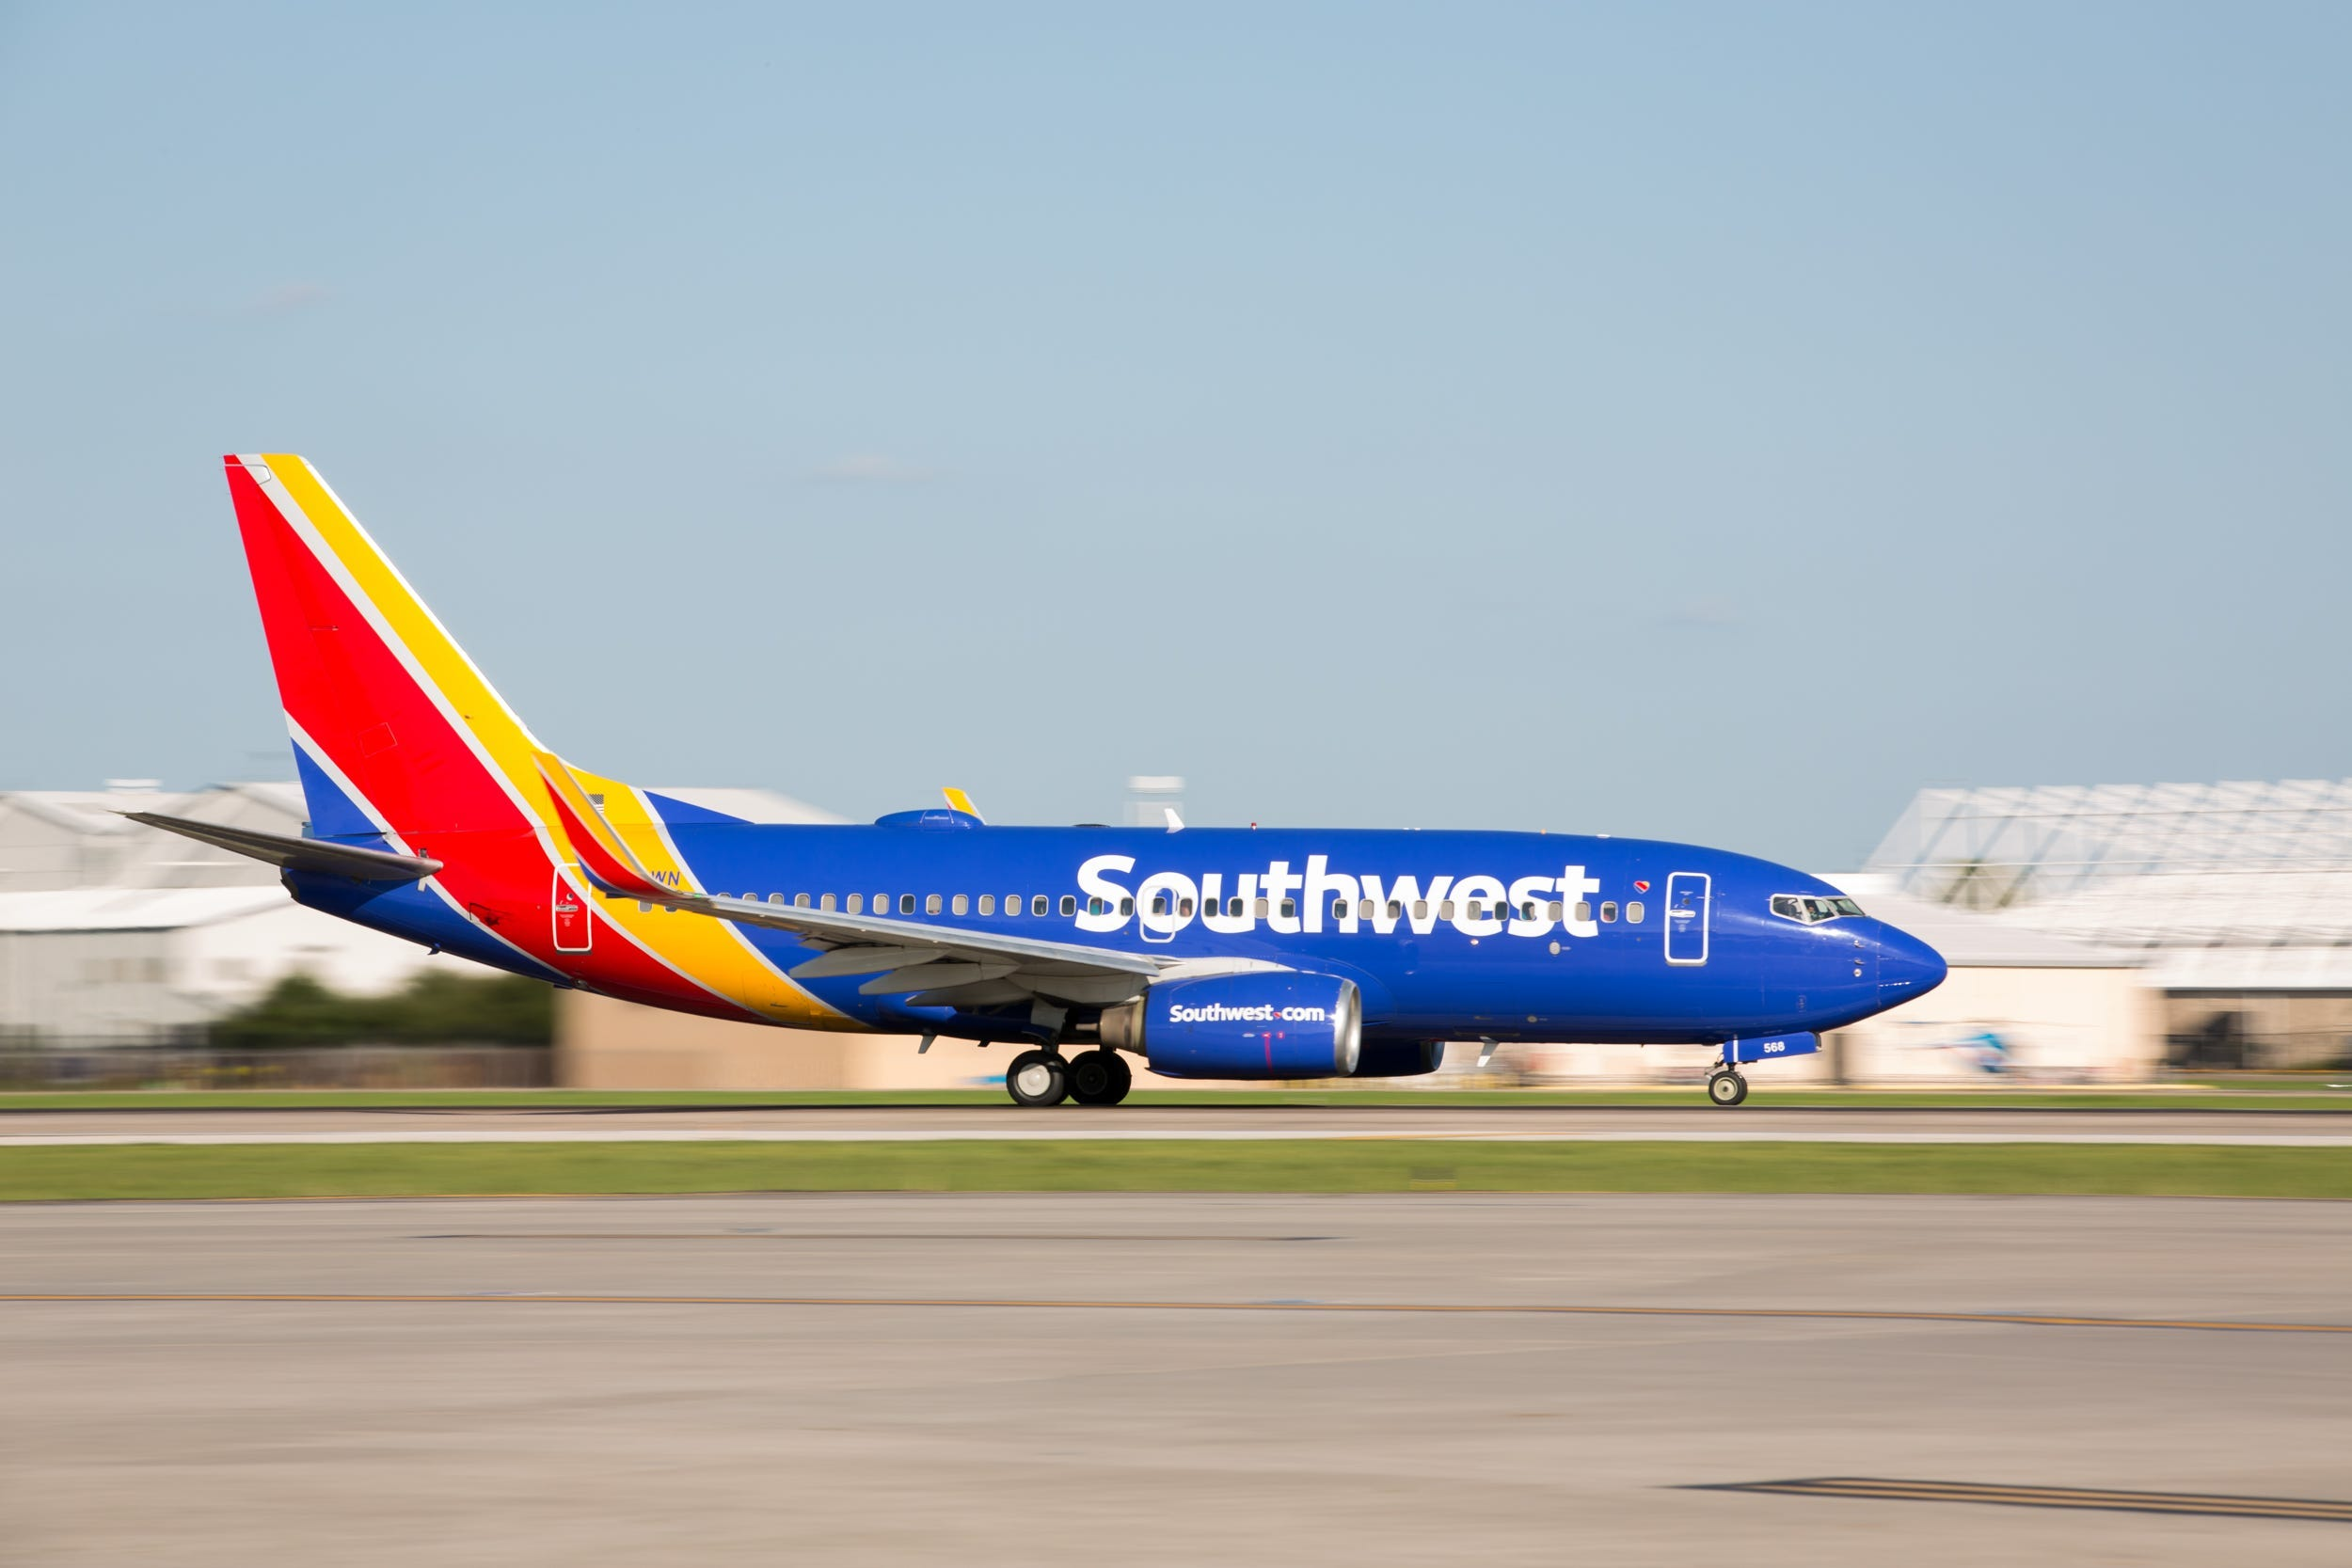 A Southwest Airlines' plan landing at an airport